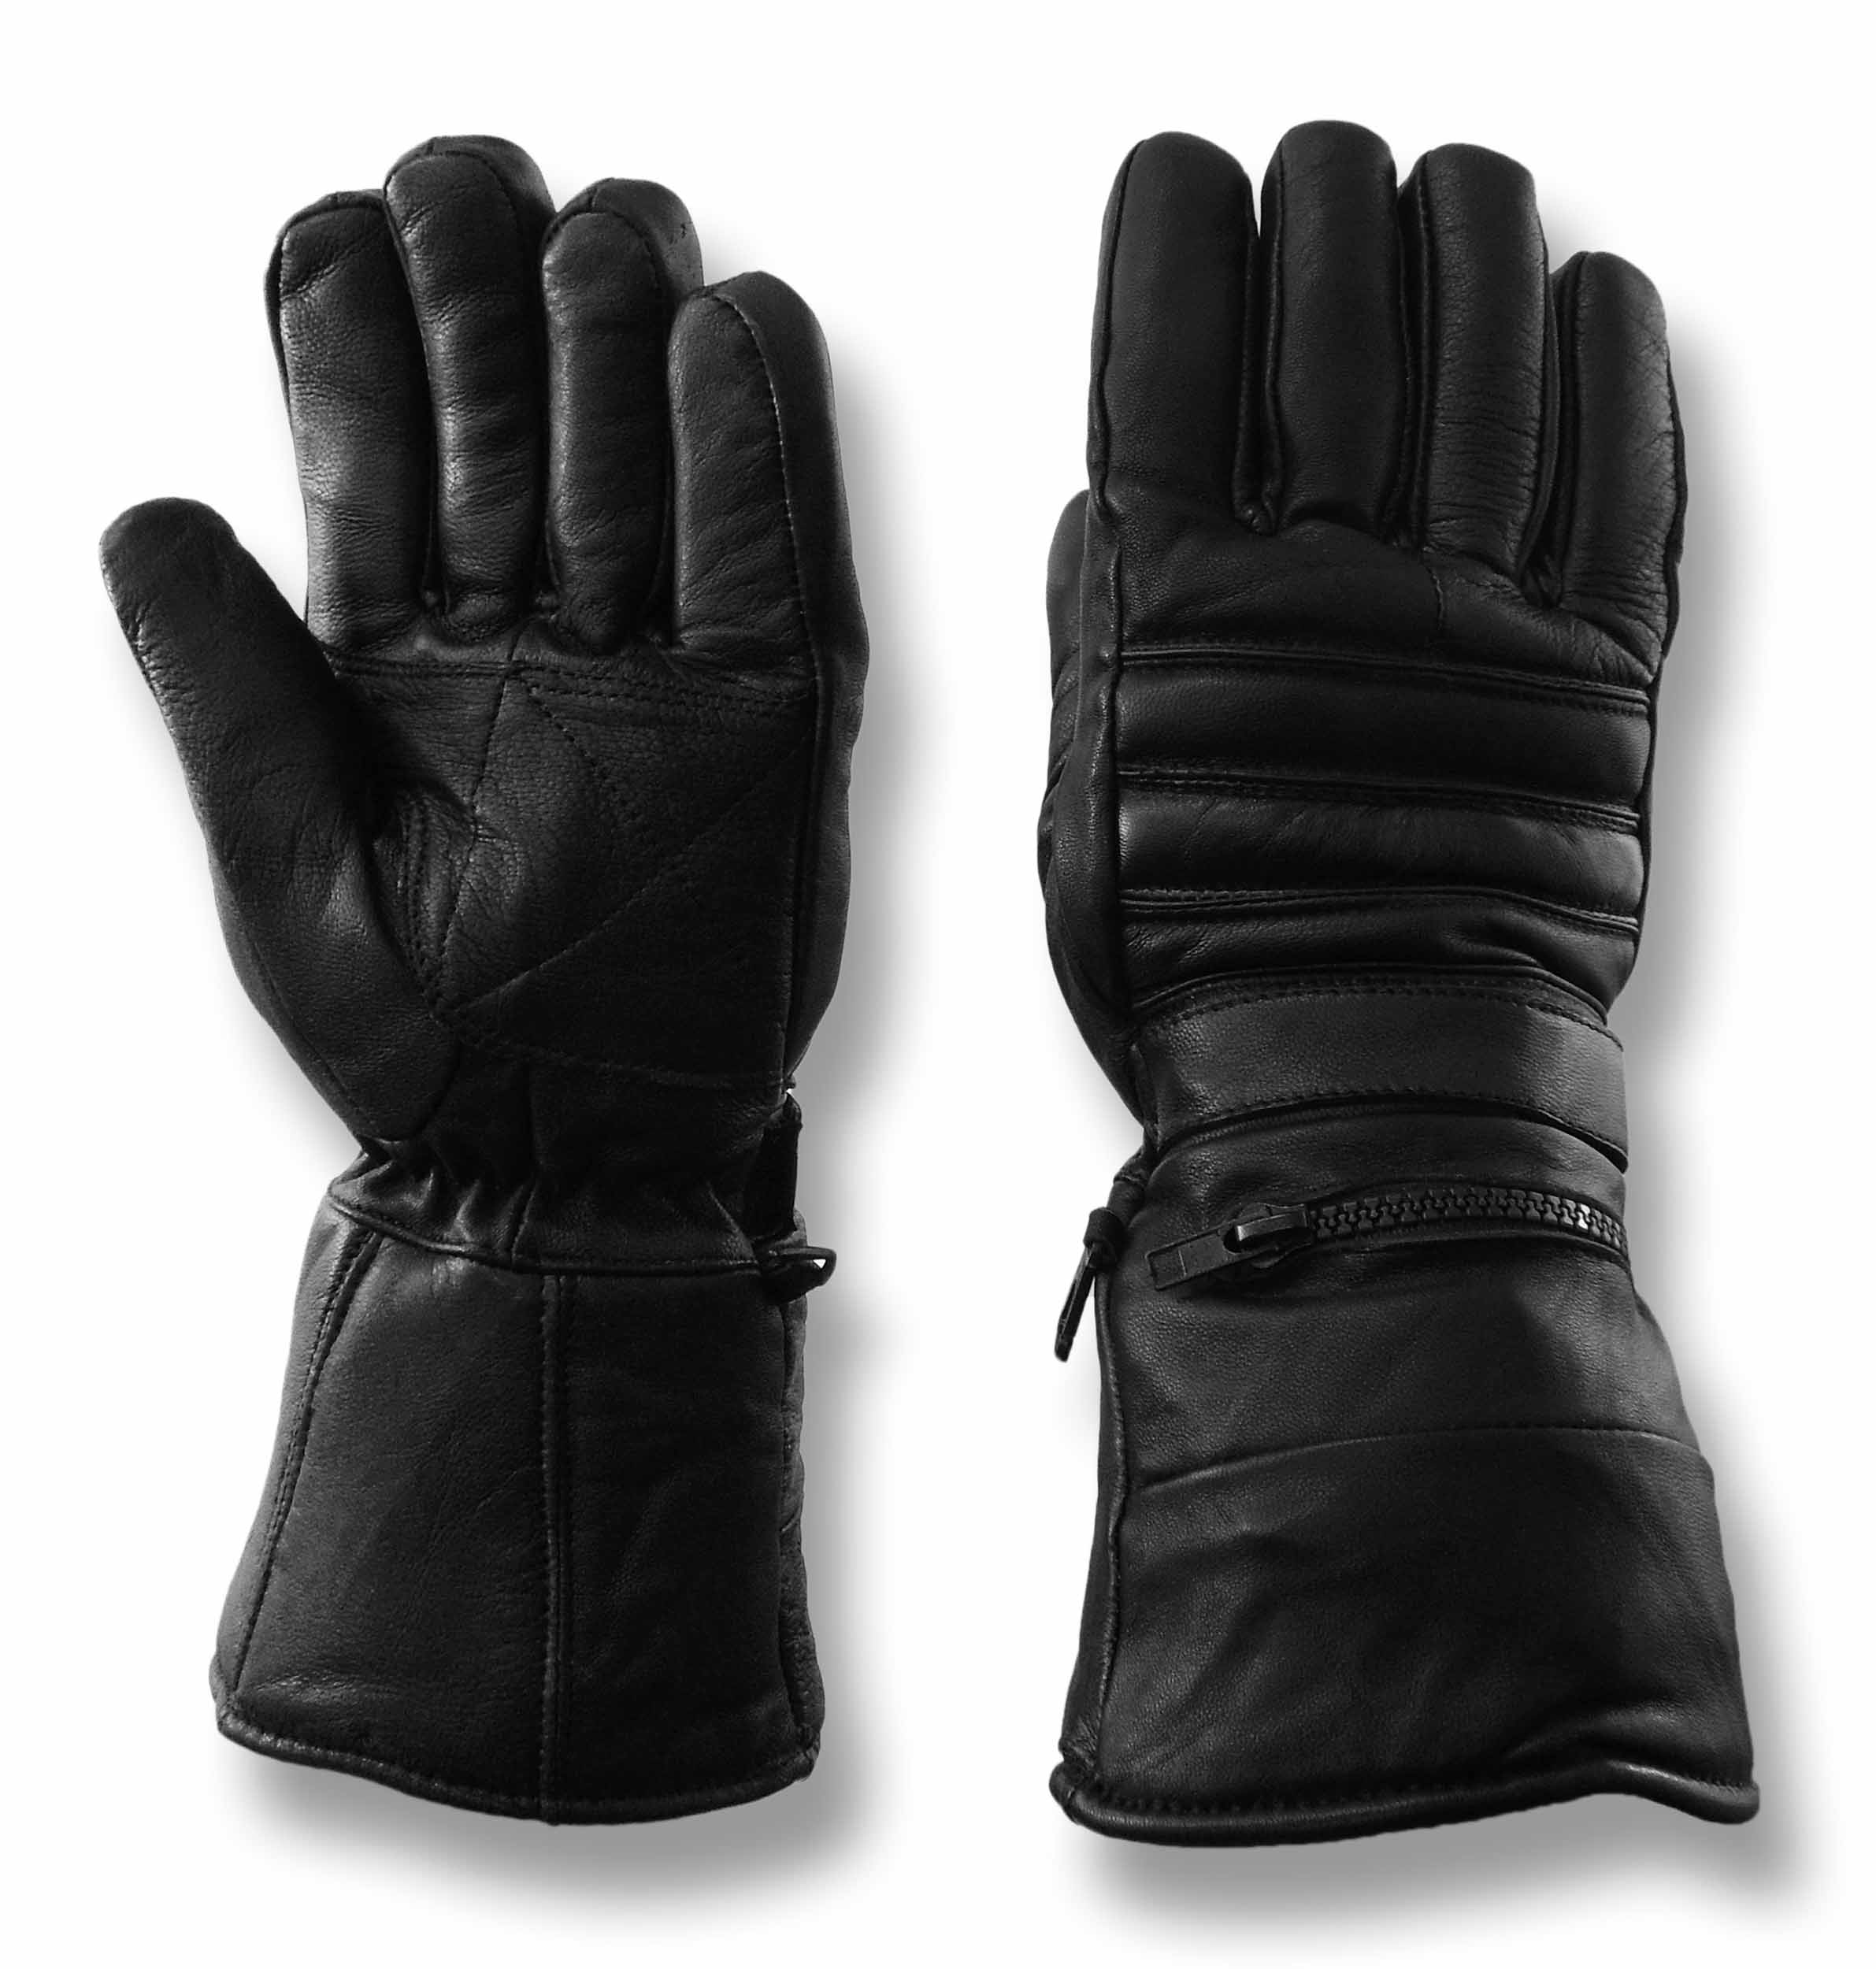 Motorcycle gloves singapore - Vance Leathers Men S Gauntlet Lambskin Motorcycle Riding Gloves Black